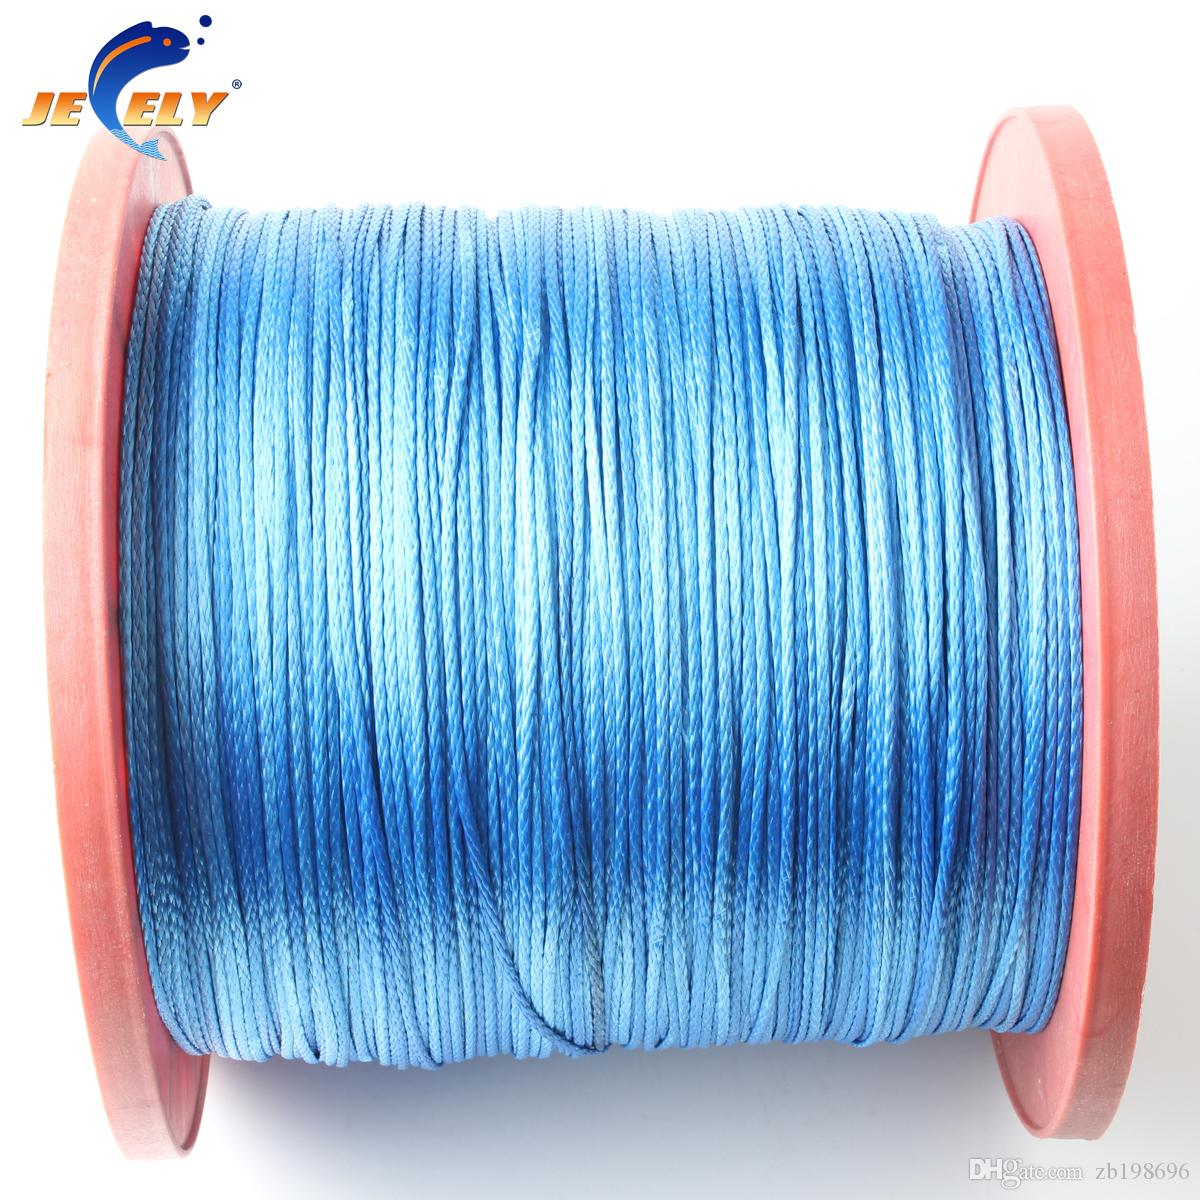 550lbs 1.6mm Braided Fishing Line UHMWPE 16 Strands 50M UHMWPE Rope ...